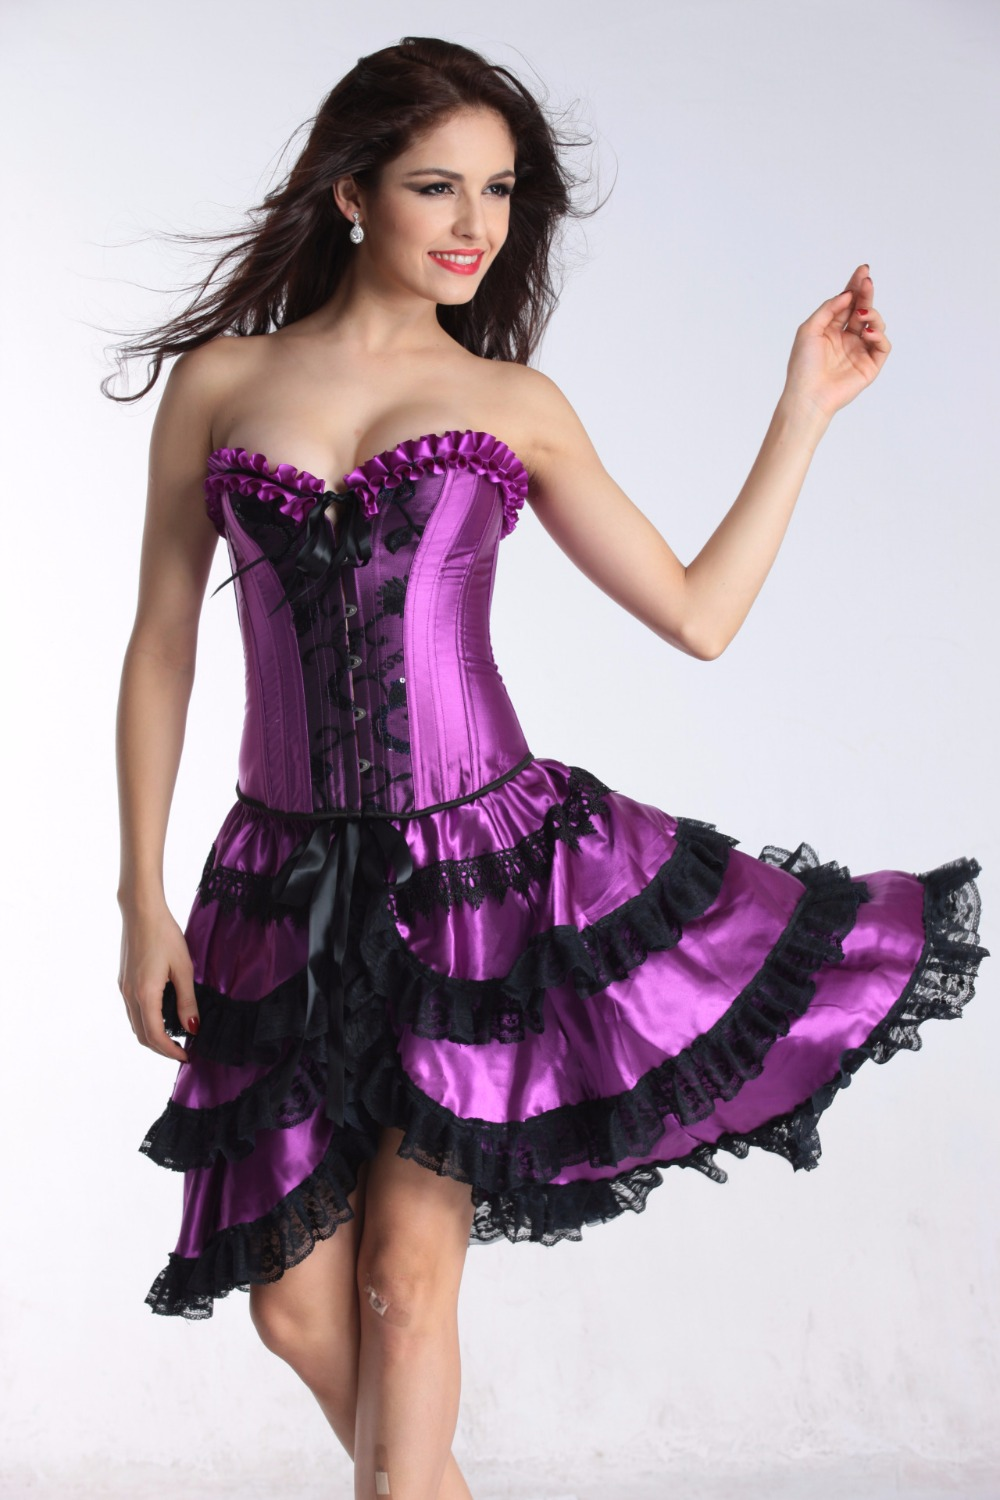 party long corset overbust bustier black purplevictorian corset dress gothic sexy burlesque exotic tutu skirt corset